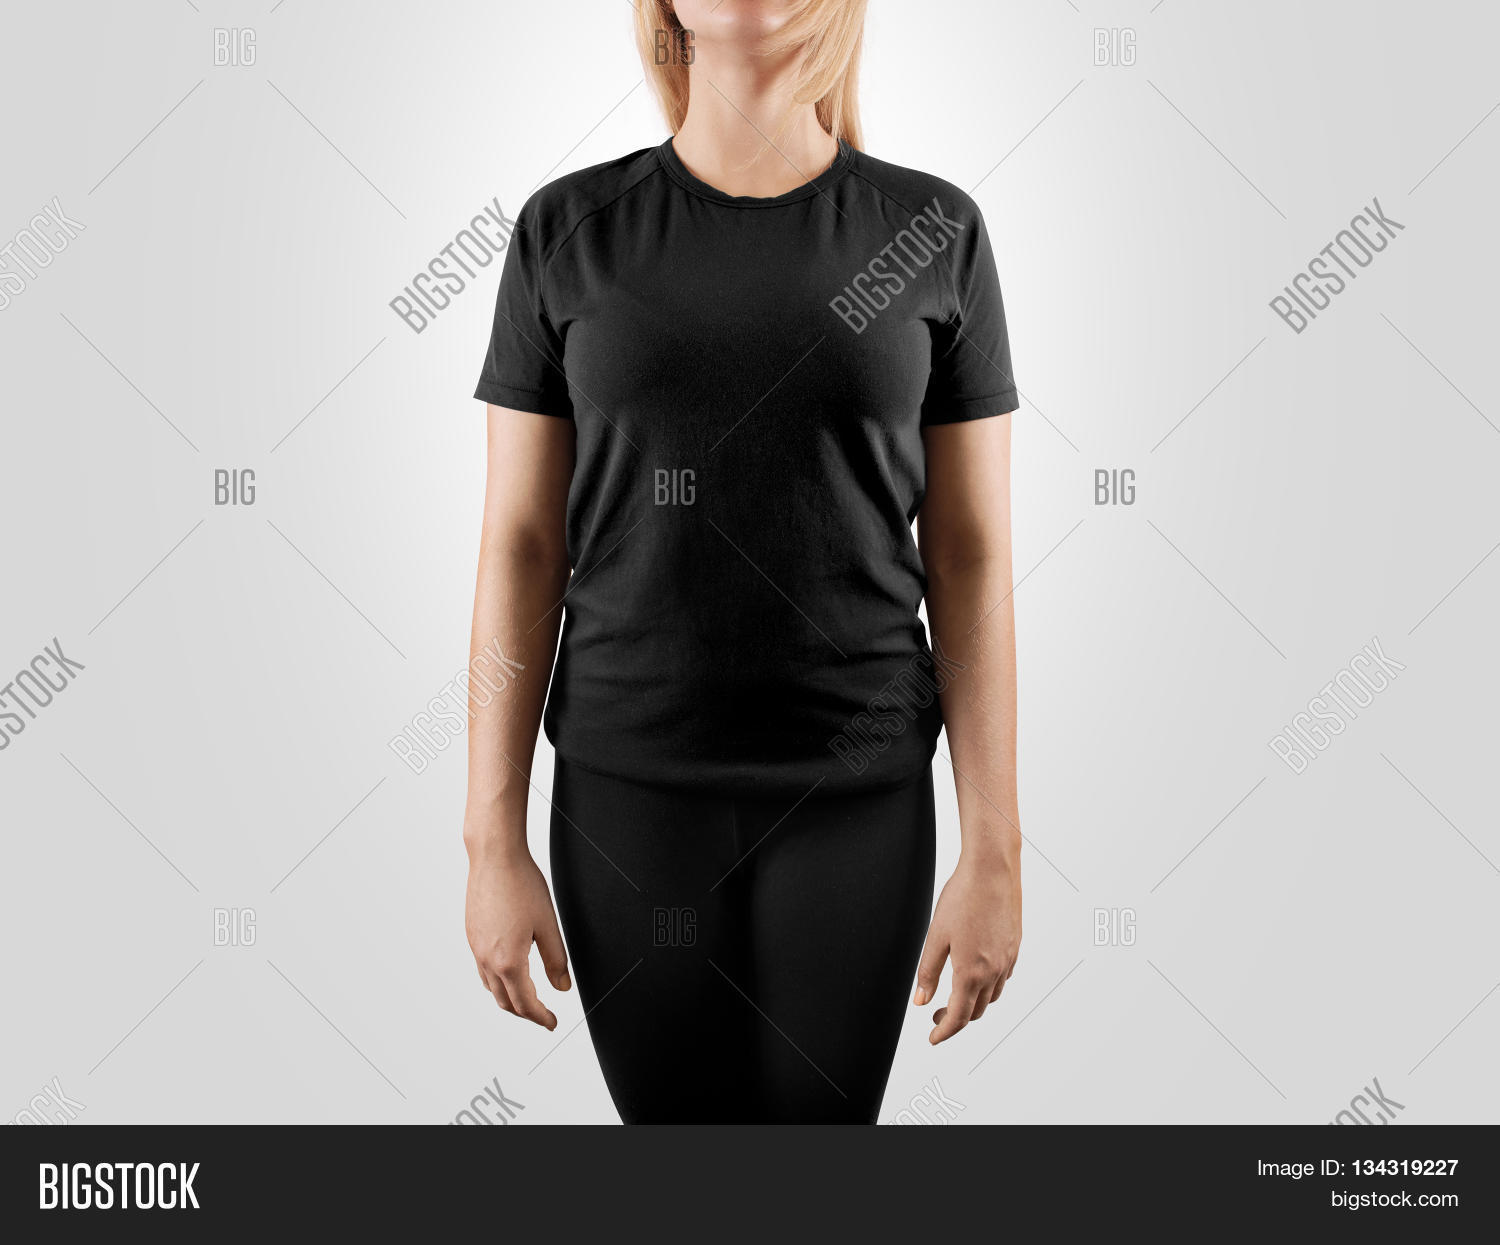 Black t shirt model template - Blank Black T Shirt Design Mockup Isolated Women Tshirt Clear Template Front Mock